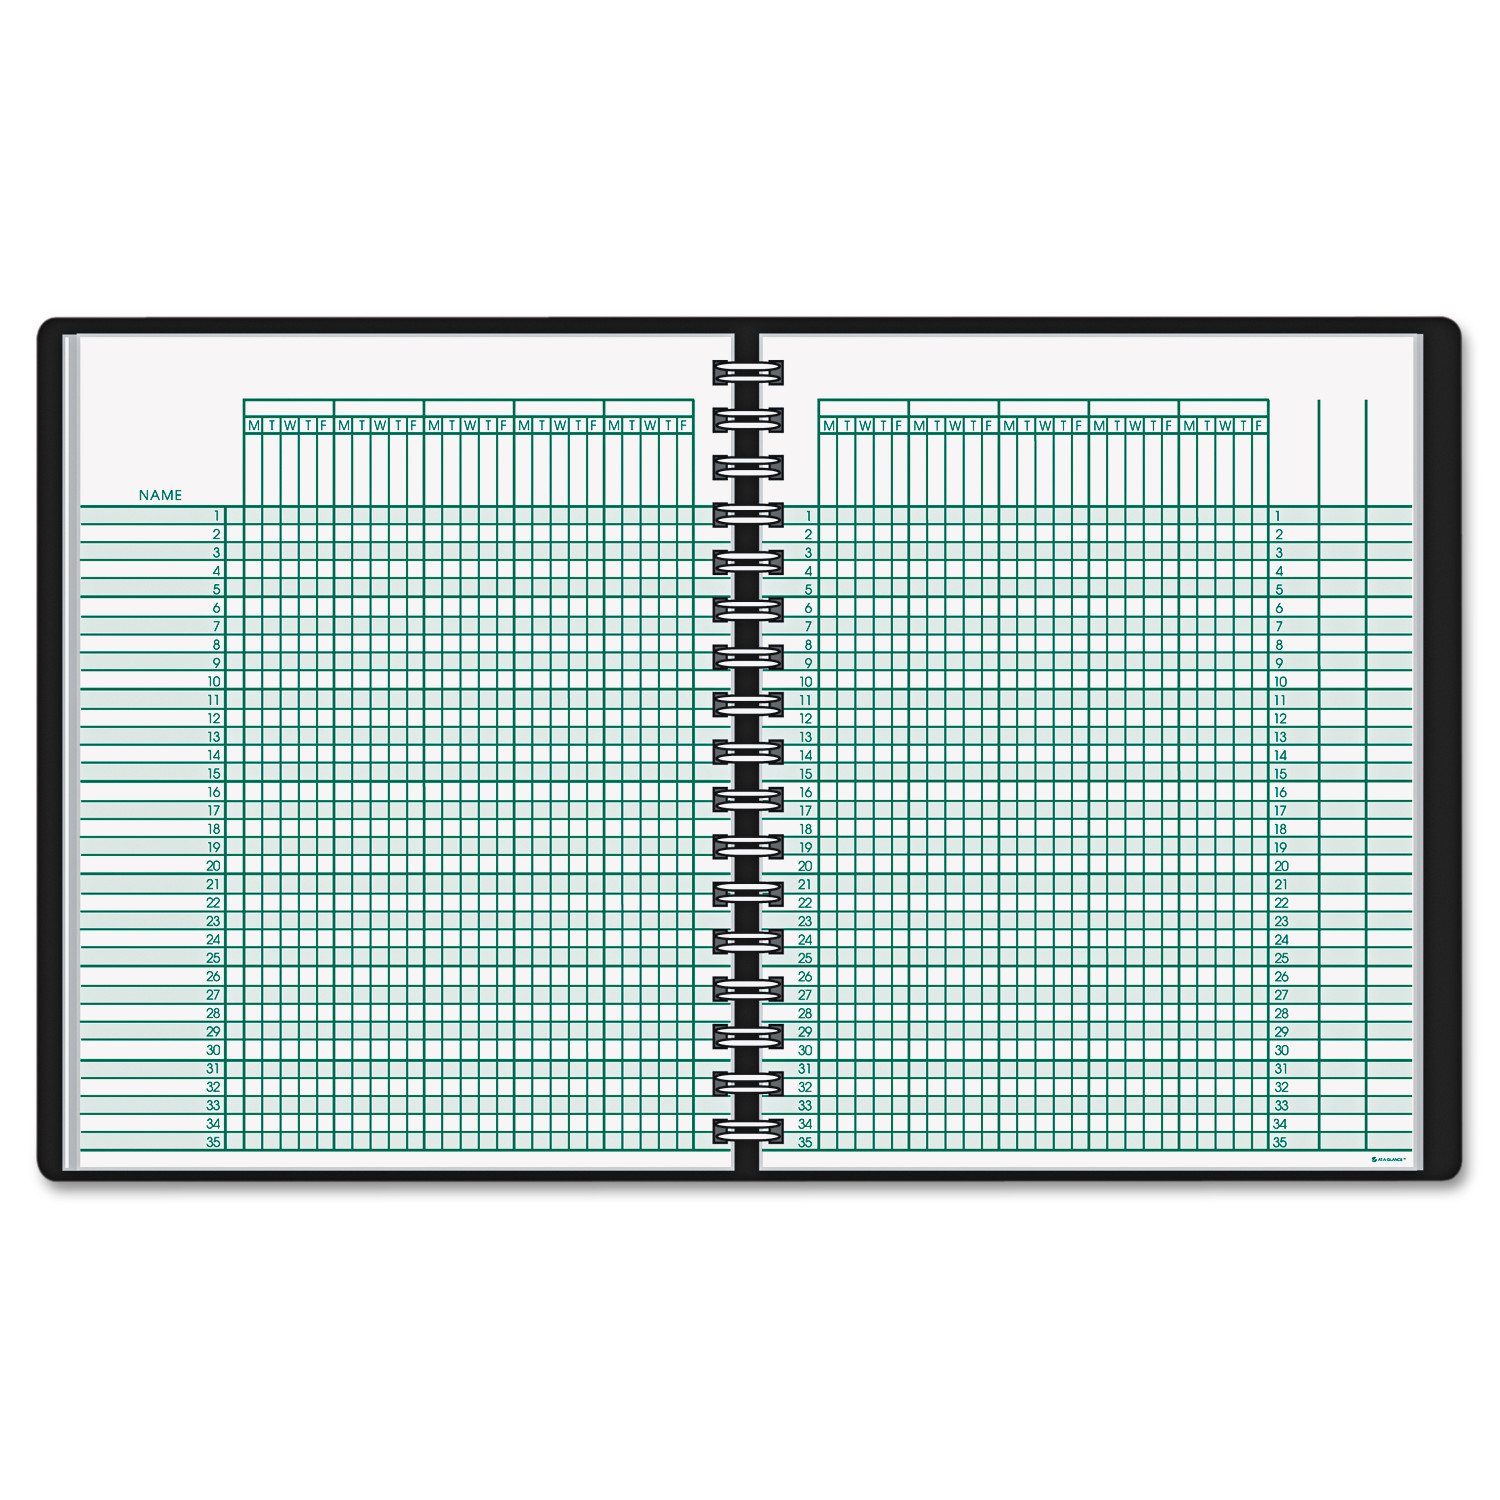 AT-A-GLANCE Undated Class Record Book, 10 7 8 x 8 1 4, Black -AAG8015005 by AT-A-GLANCE